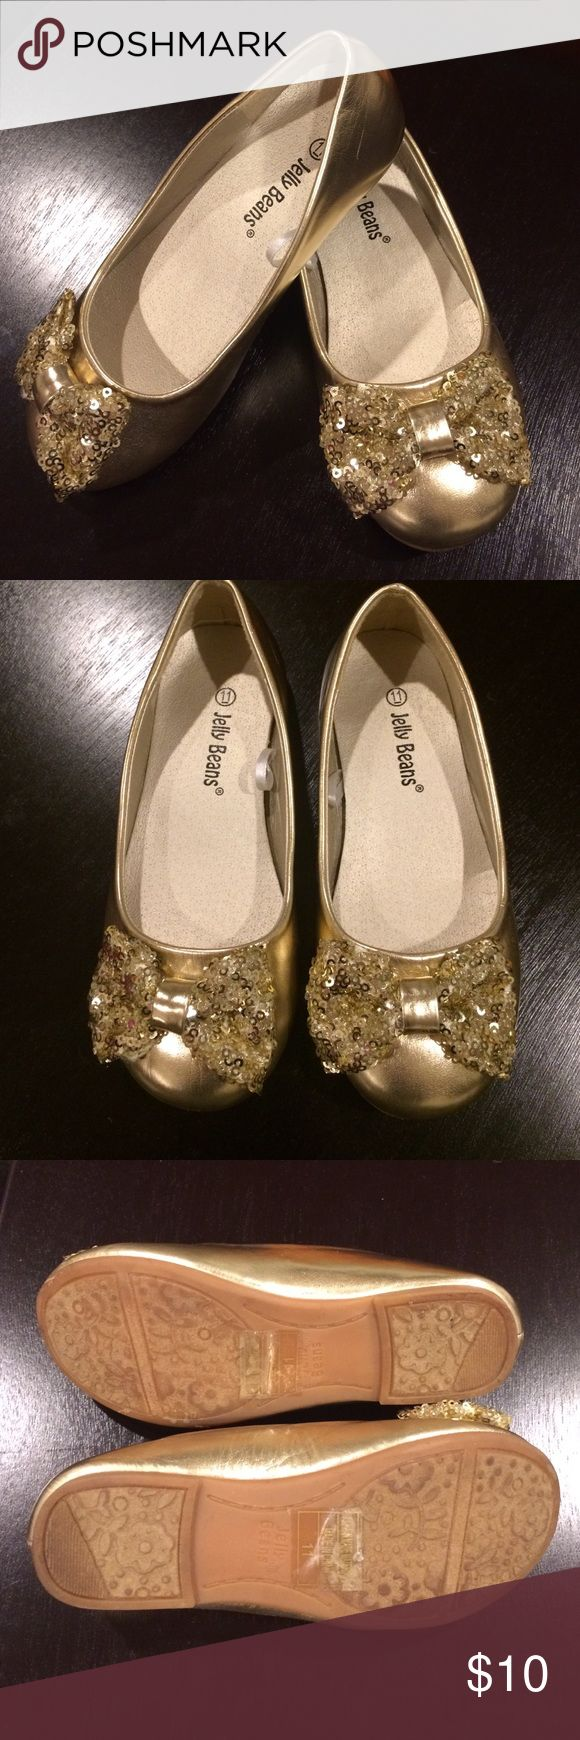 Girls Gold Flats Great Condition girls gold ballet flats, size 11 by Jelly Beans. Bow on front toe is gold sequins. Jelly Beans Shoes Dress Shoes